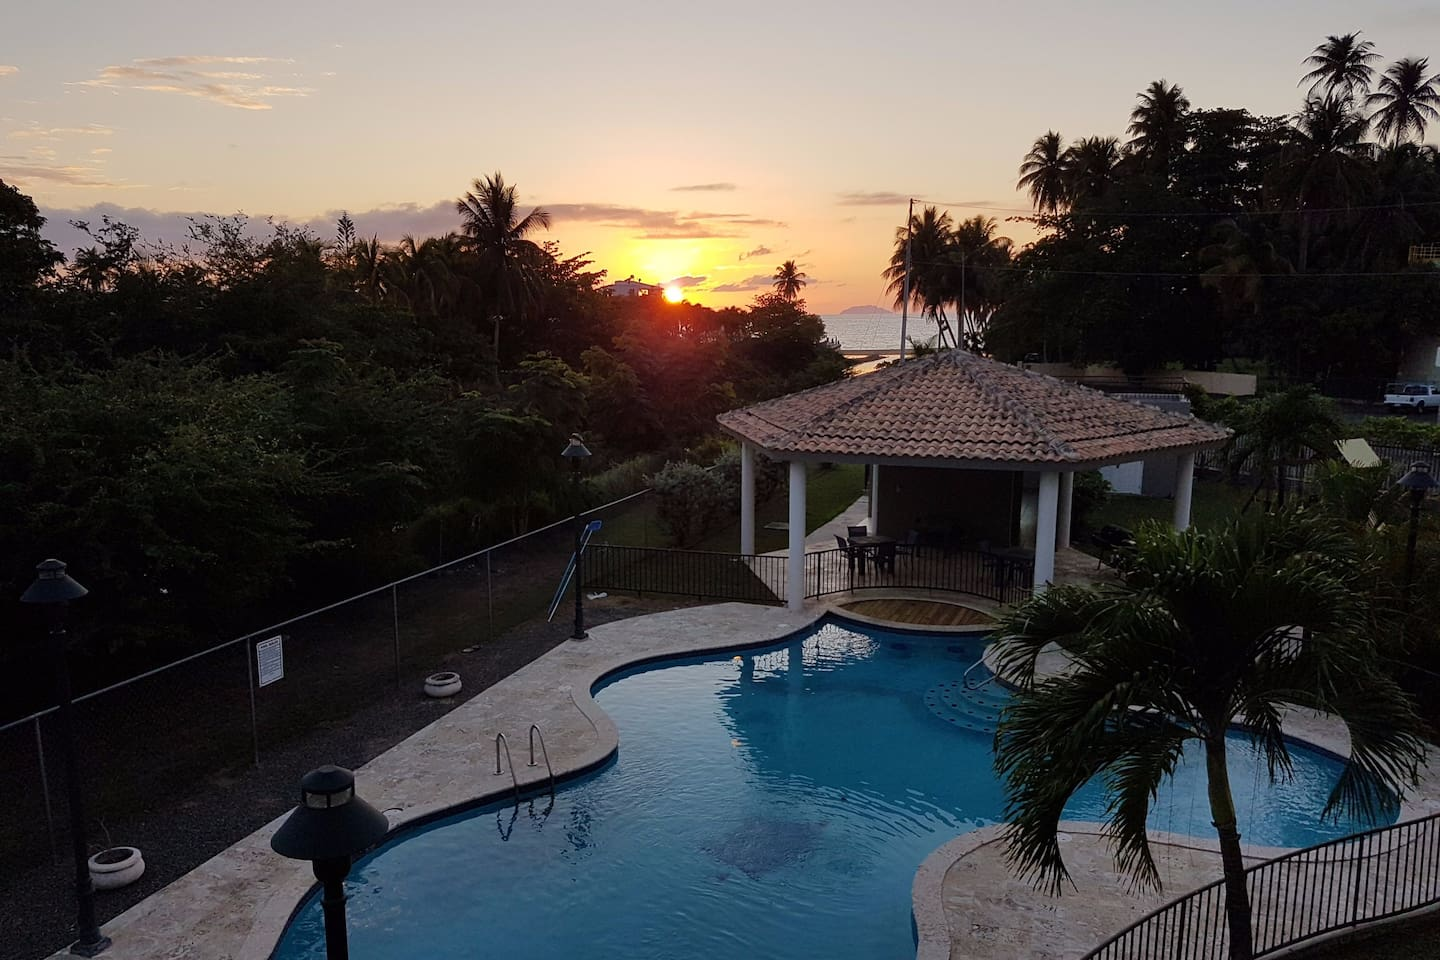 Watch the beautiful sunset from your balcony!  The apartment faces west overlooking the pool, a canal that leads to the ocean, and Desecheo Island off in the distance.